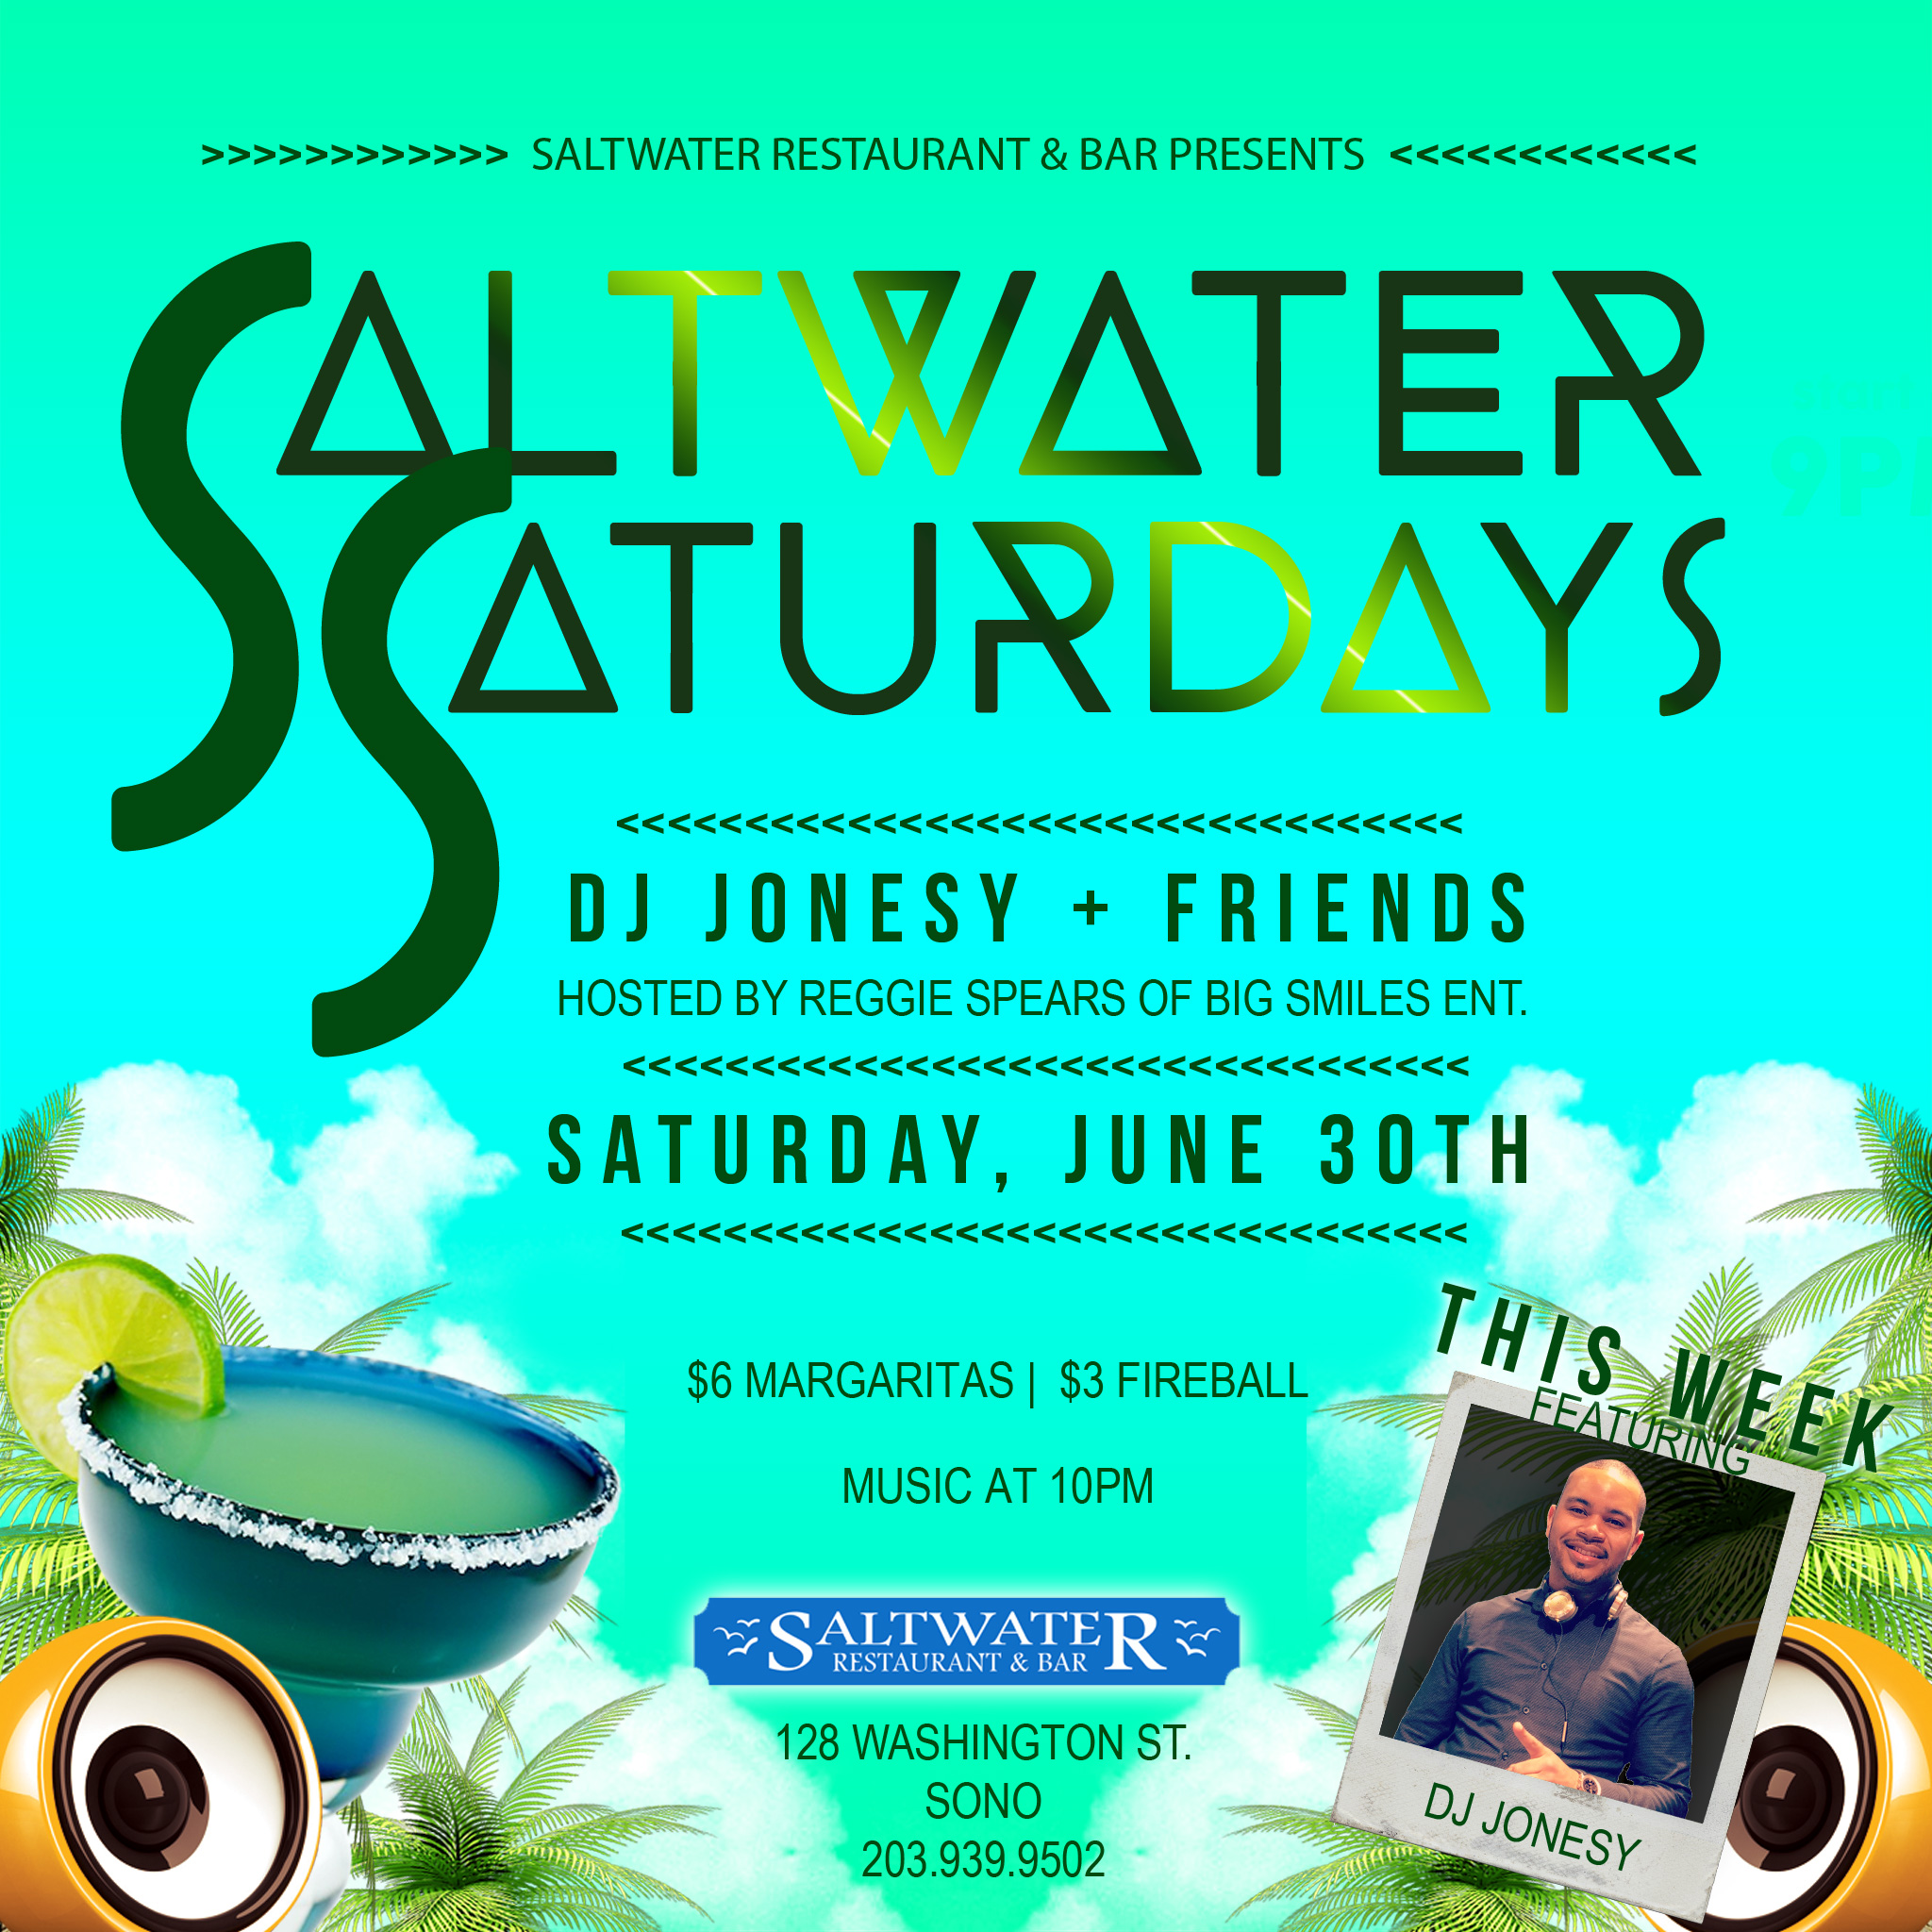 SALTWATER-SATURDAYS-ROUND2-JONESYANDFRIENDS-JUNE30-JONESY.jpg